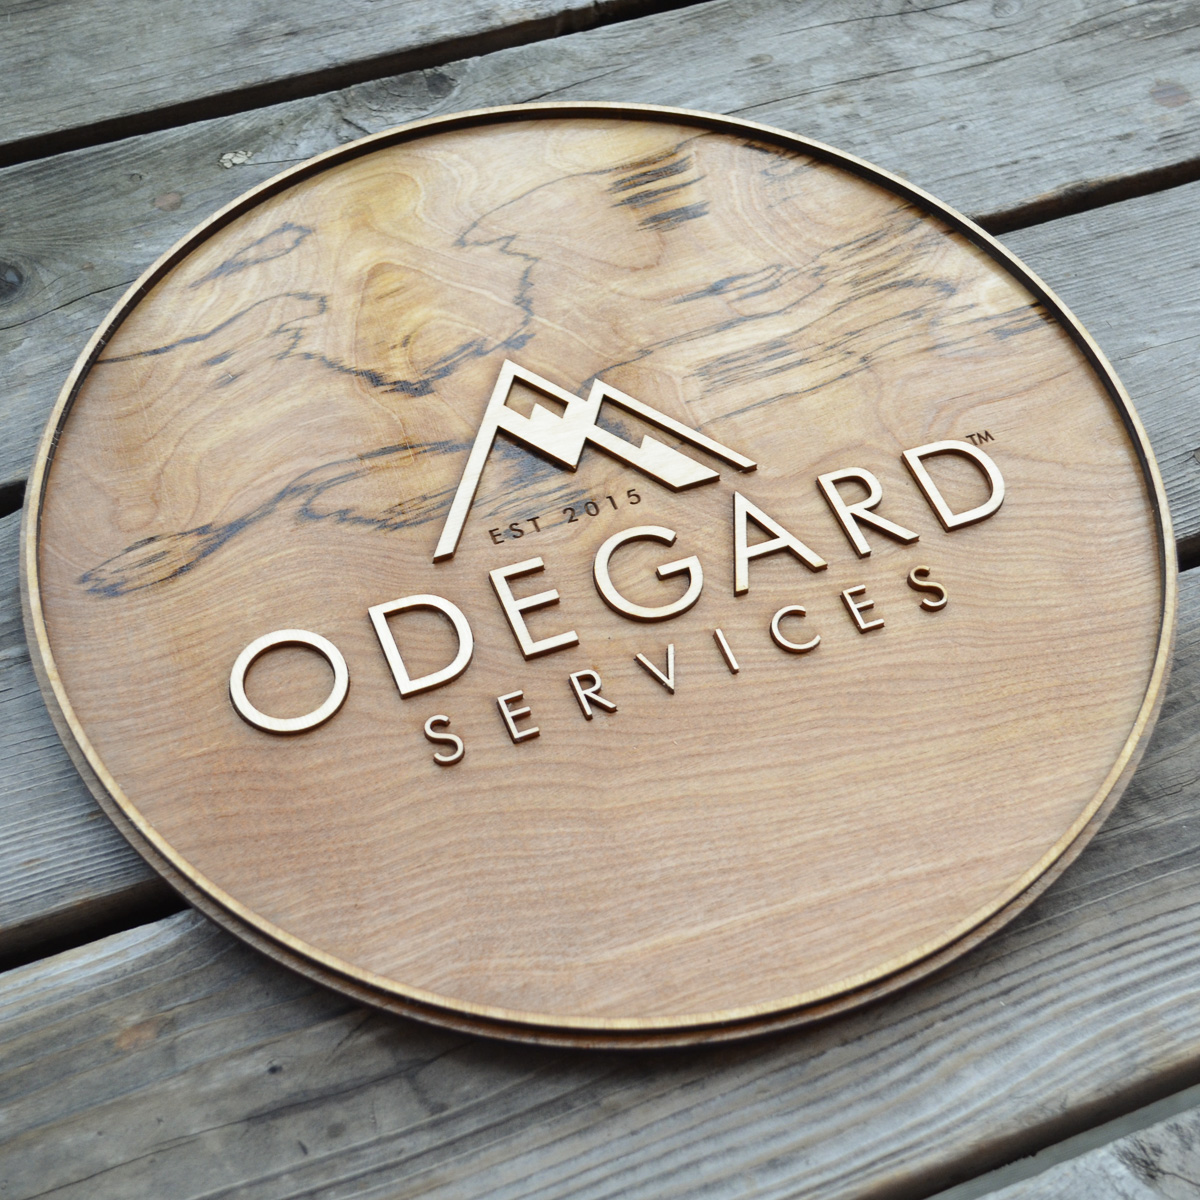 odegard services sign